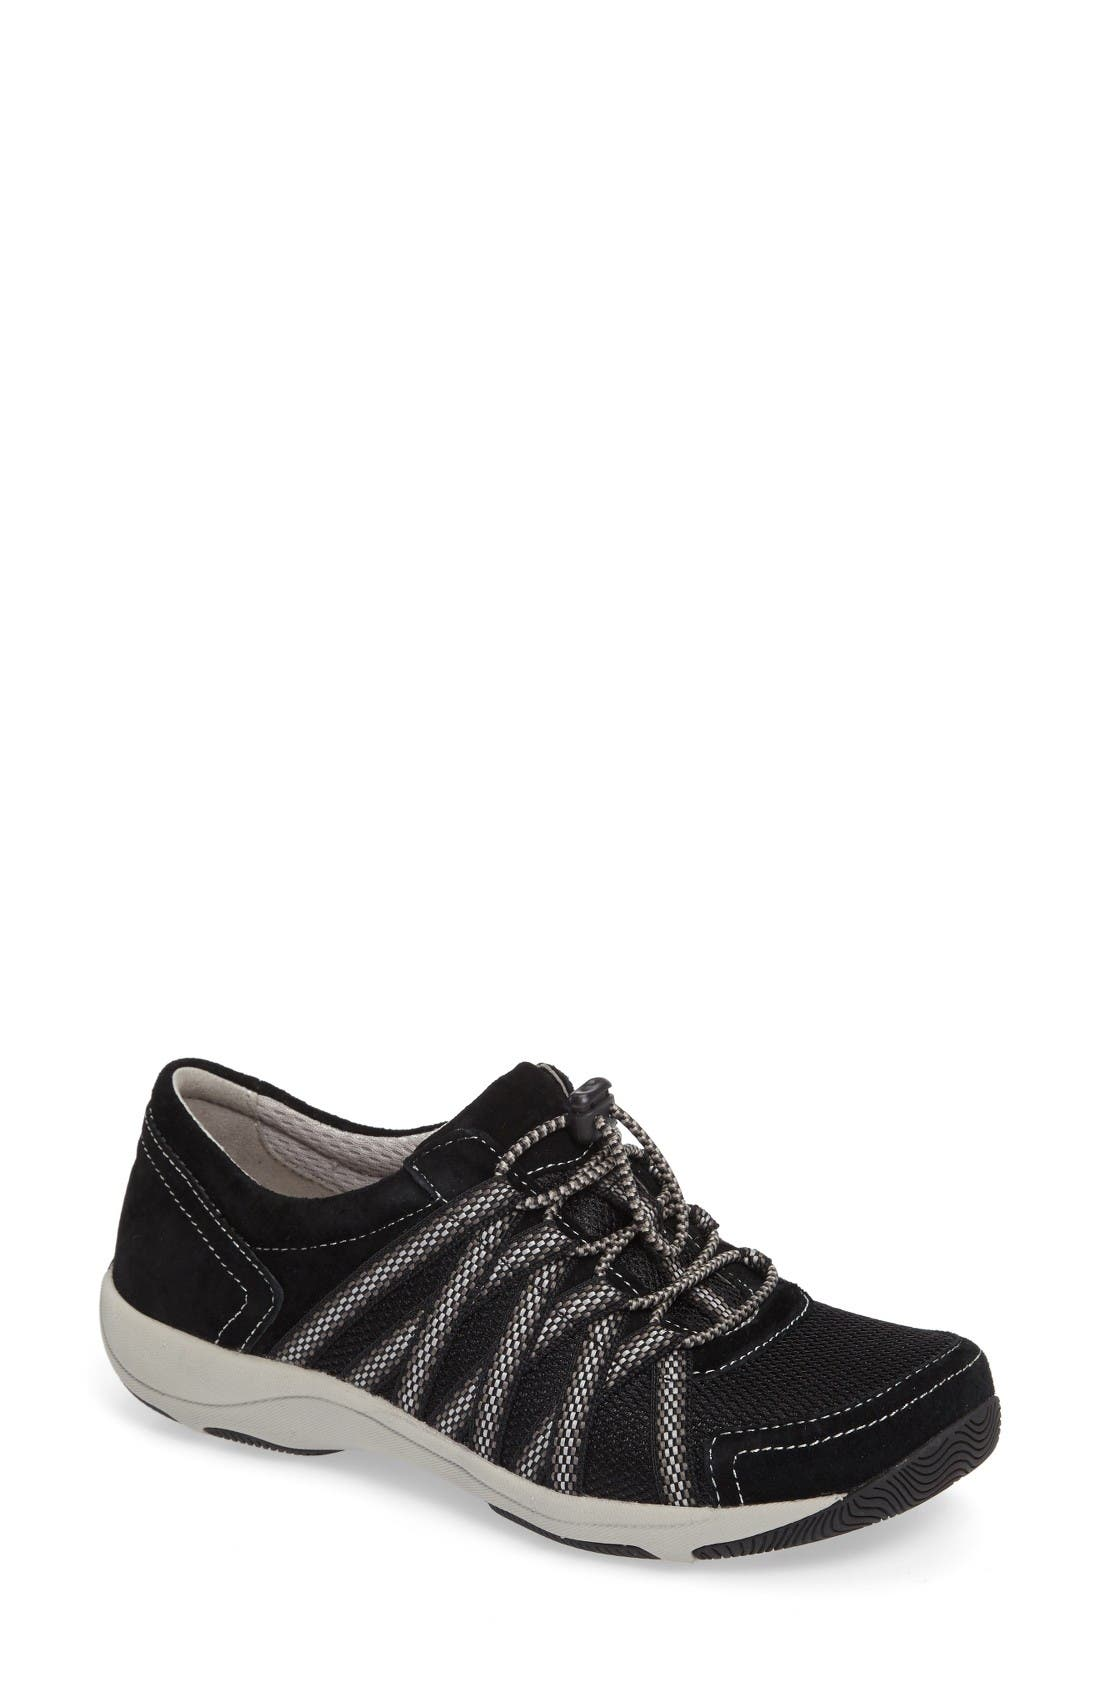 Halifax Collection Honor Sneaker,                             Main thumbnail 1, color,                             Black Suede